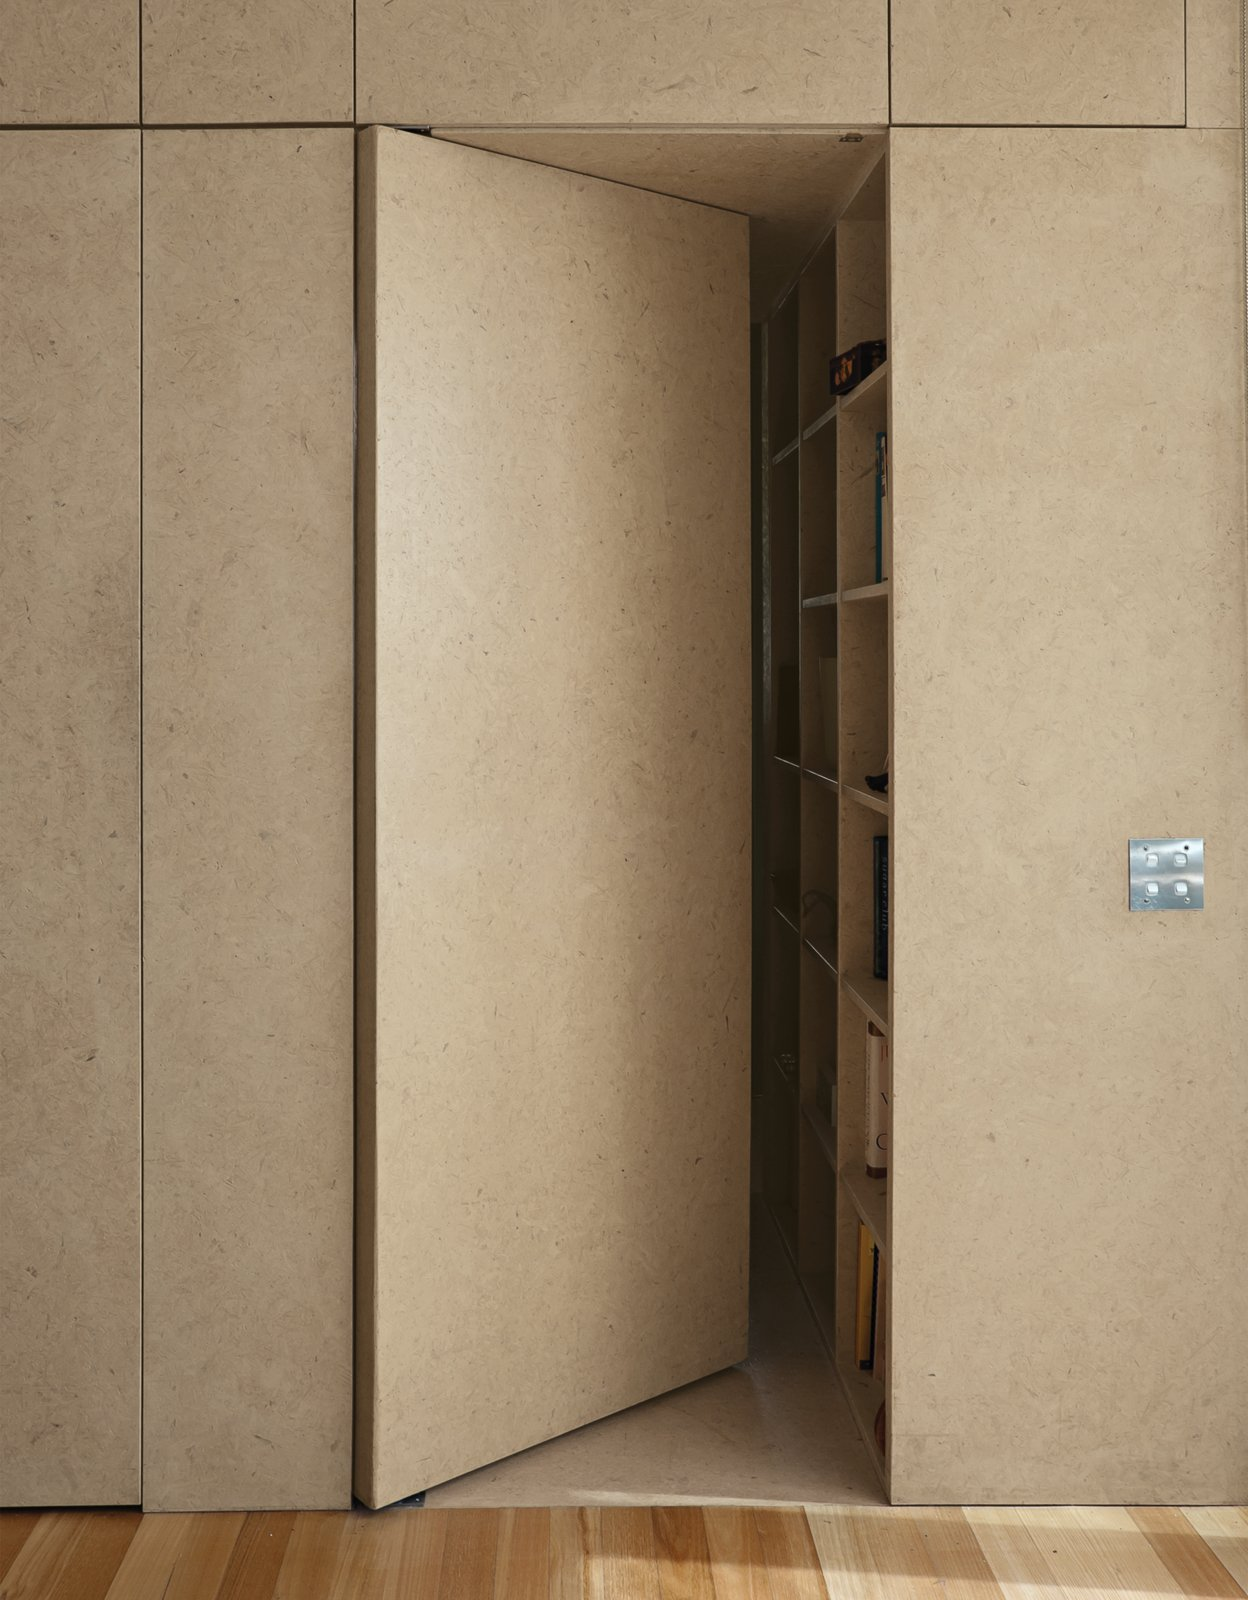 An almost-concealed door designed as a part of the kitchen cabinetry leads to the main bedroom and en-suite bath.